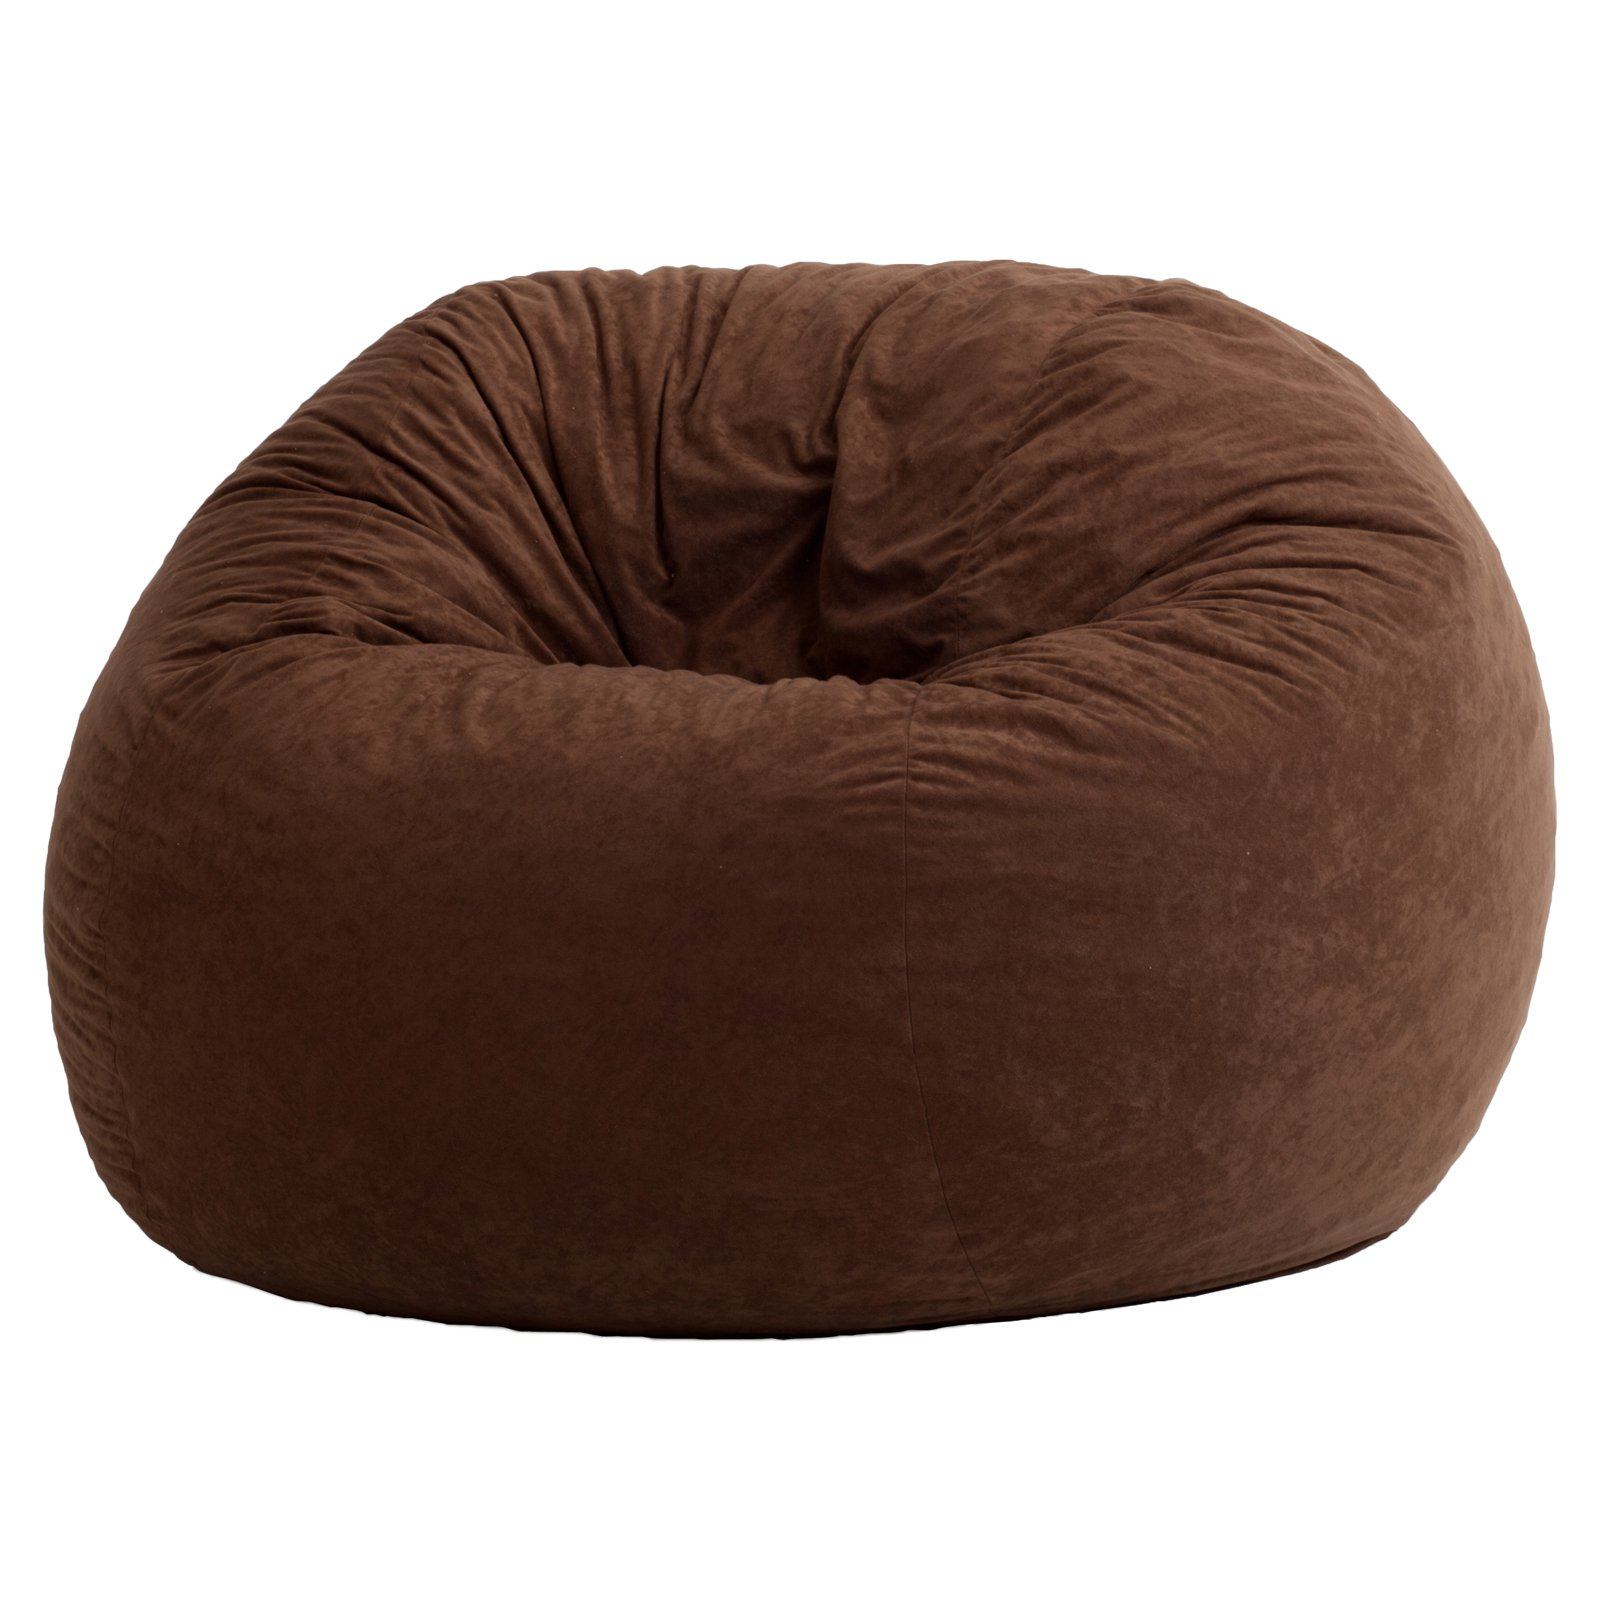 4 Fuf fort Suede Bean Bag Chair Black yx Walmart